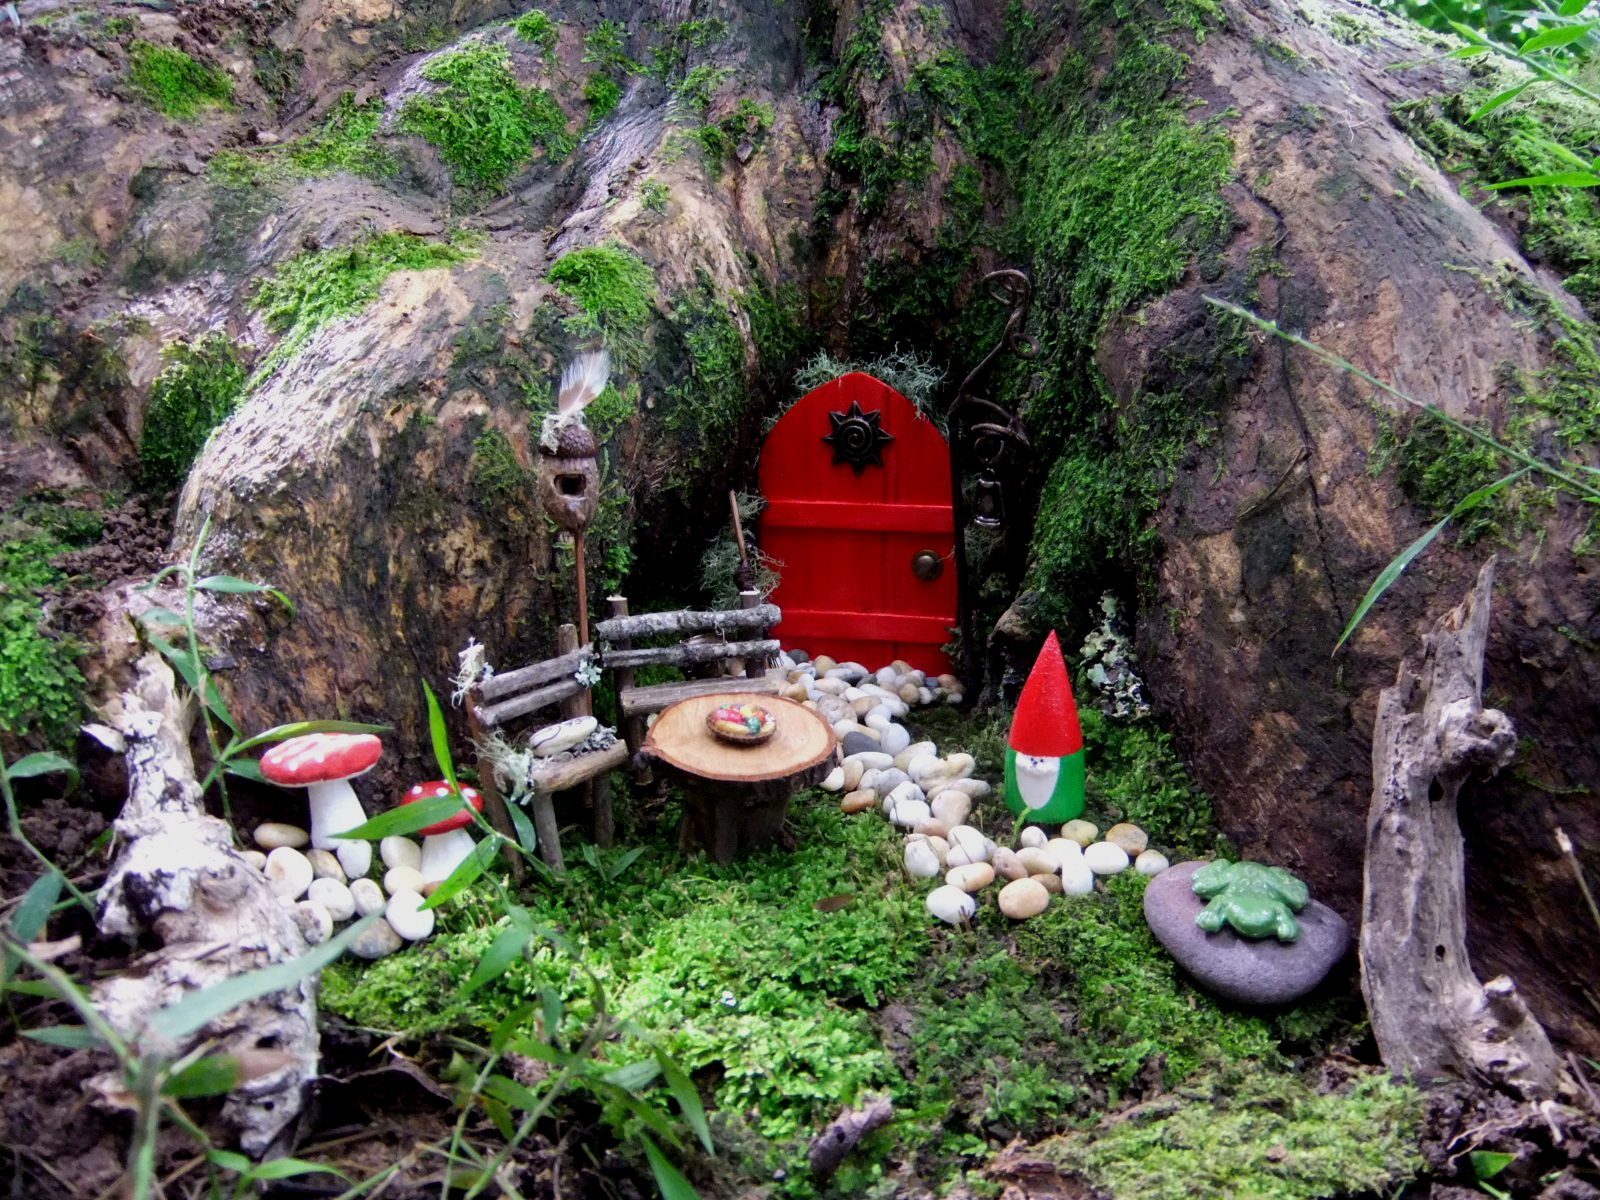 Sturdy Diy Fairy Gardens Open Doors To Magical Places Unleash Your Imagination Magical Fairy Garden Designs Kids Diy Fairy Gardens Diy Fairy Gardens garden Diy Fairy Gardens